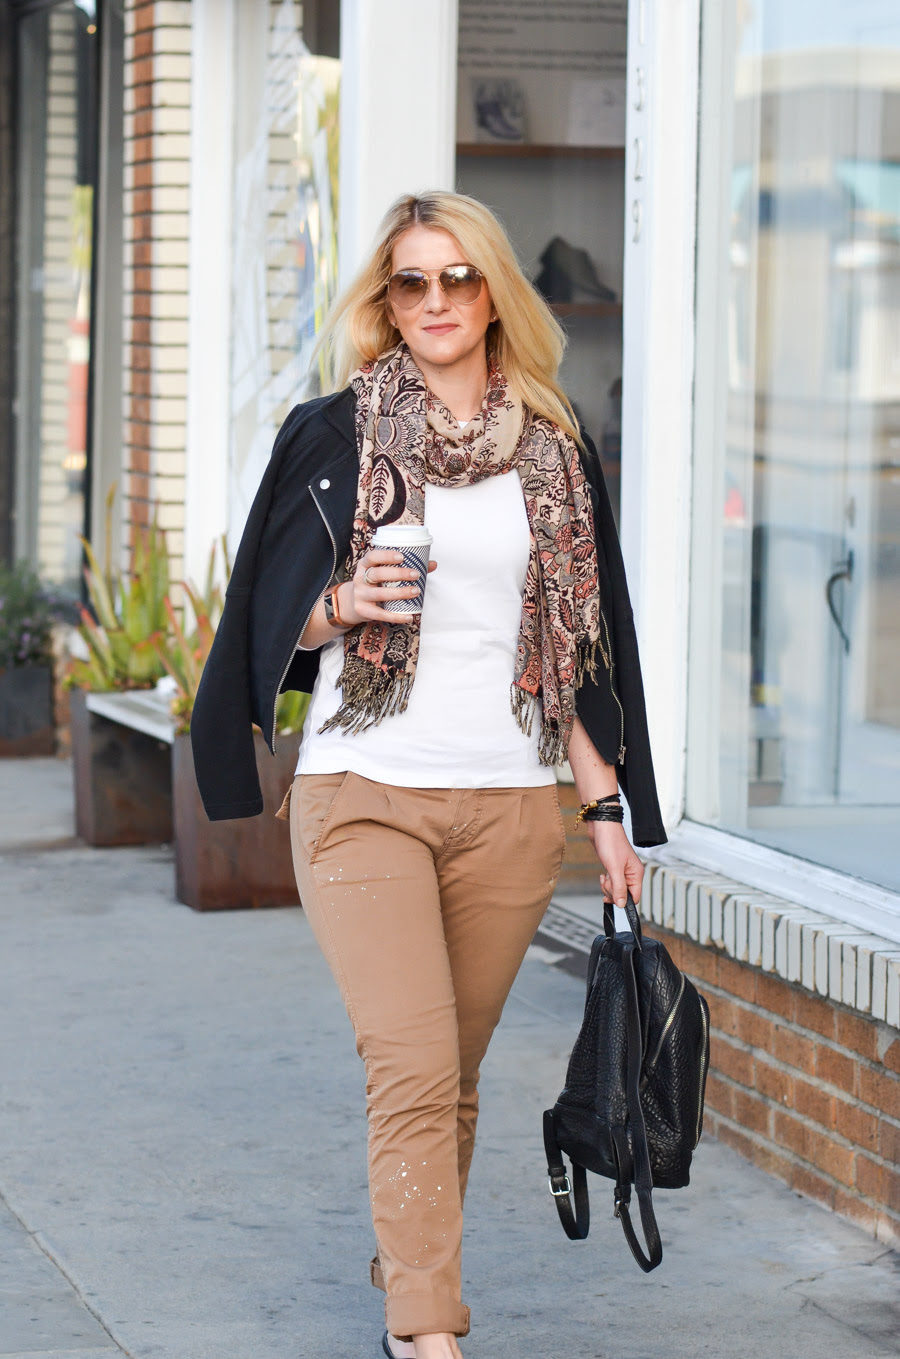 khaki pants outfit ideas for women  luci's morsels